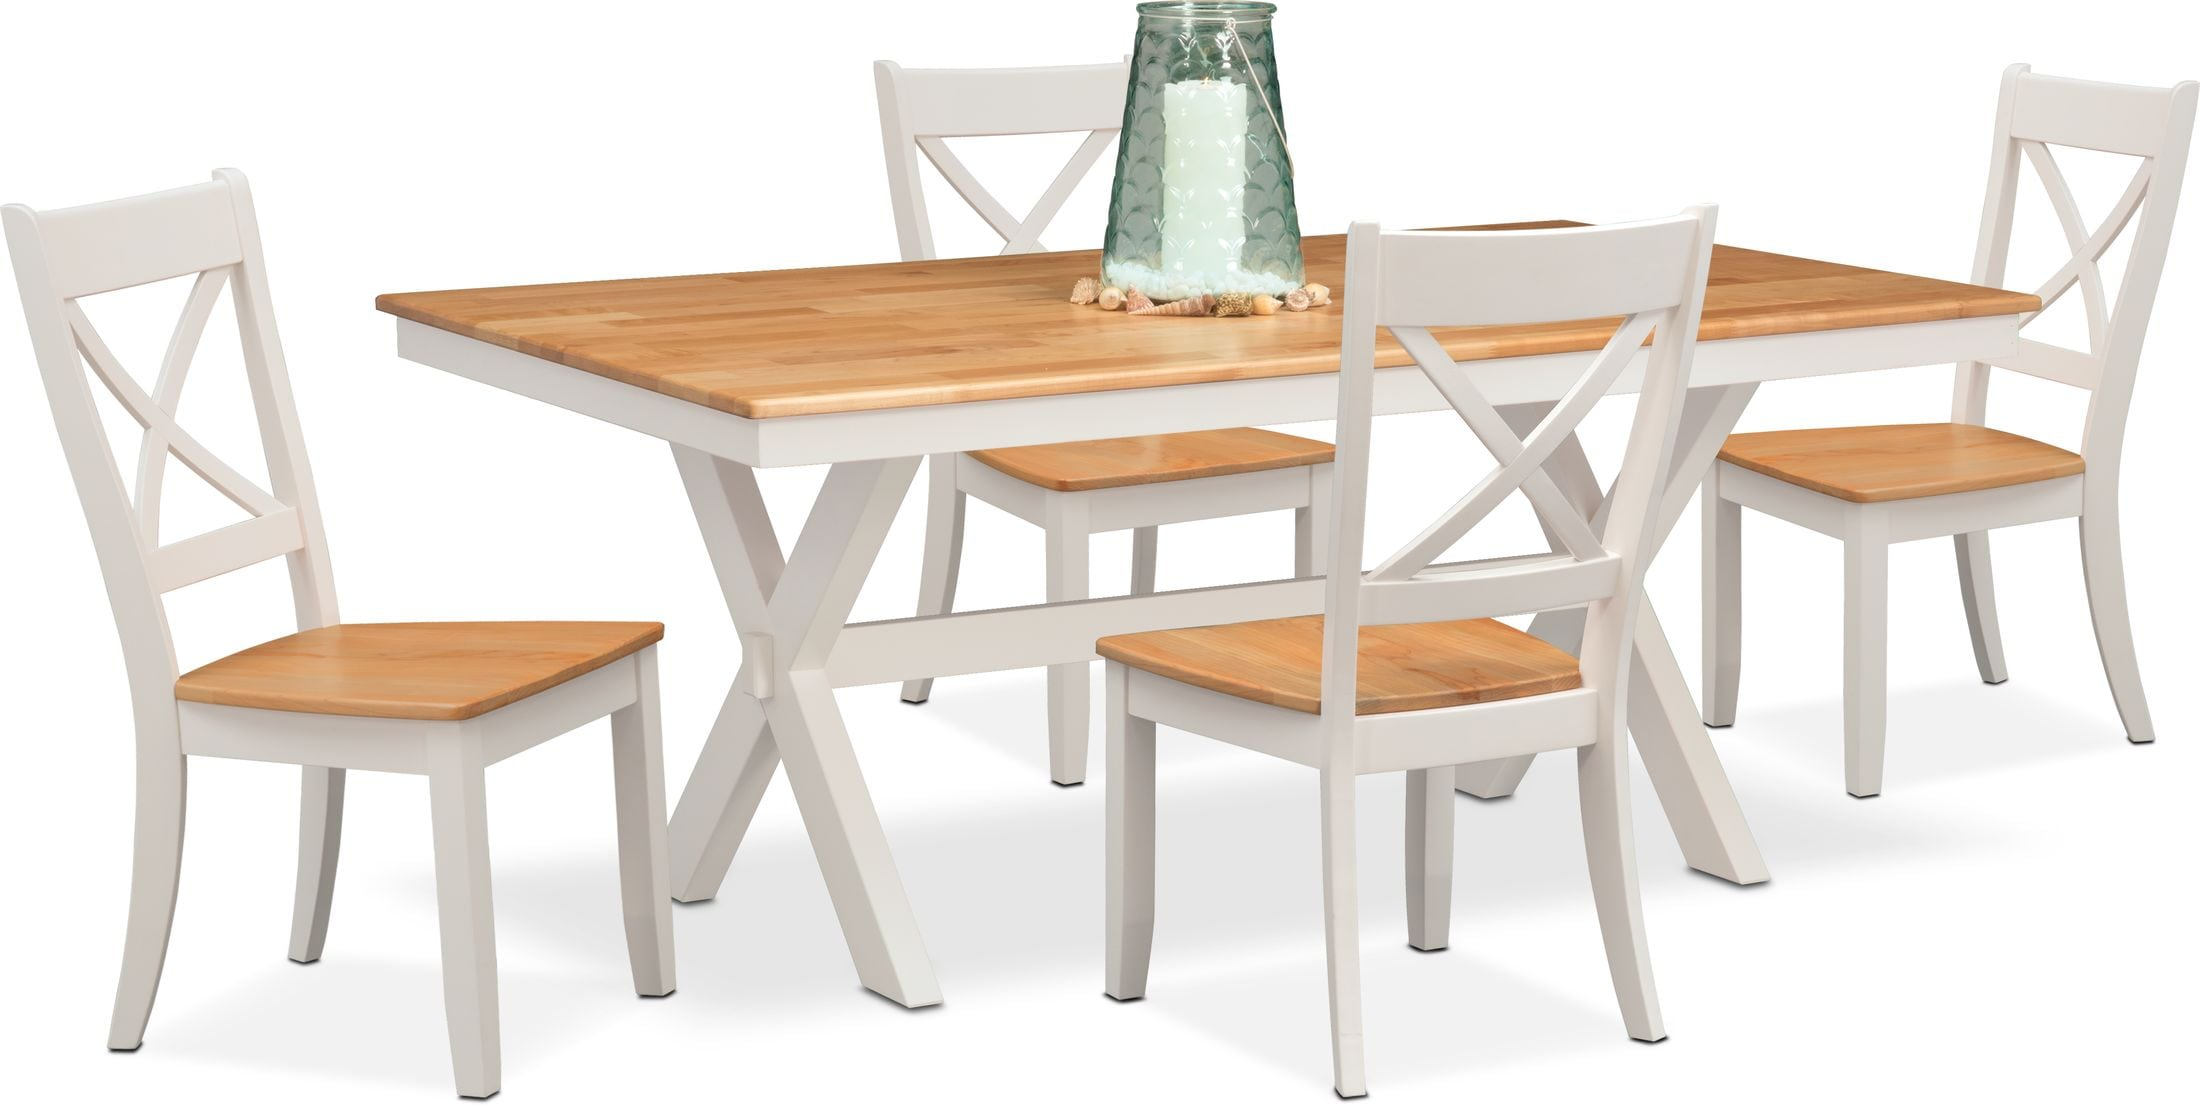 Dining Room Furniture - Nantucket Trestle Dining Table and 4 Dining Chairs